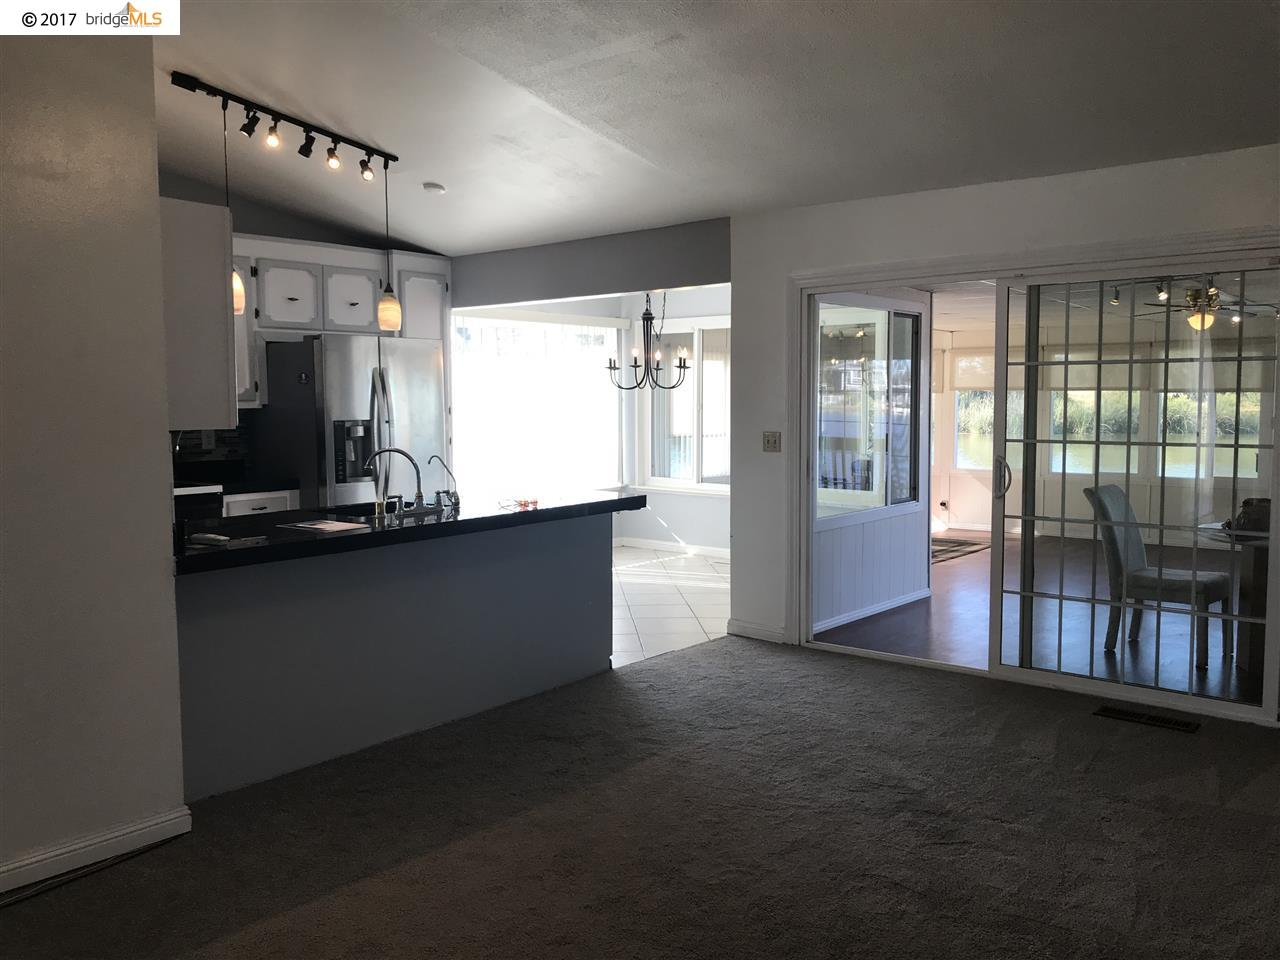 Additional photo for property listing at 5511 Starboard Court 5511 Starboard Court Discovery Bay, California 94505 United States